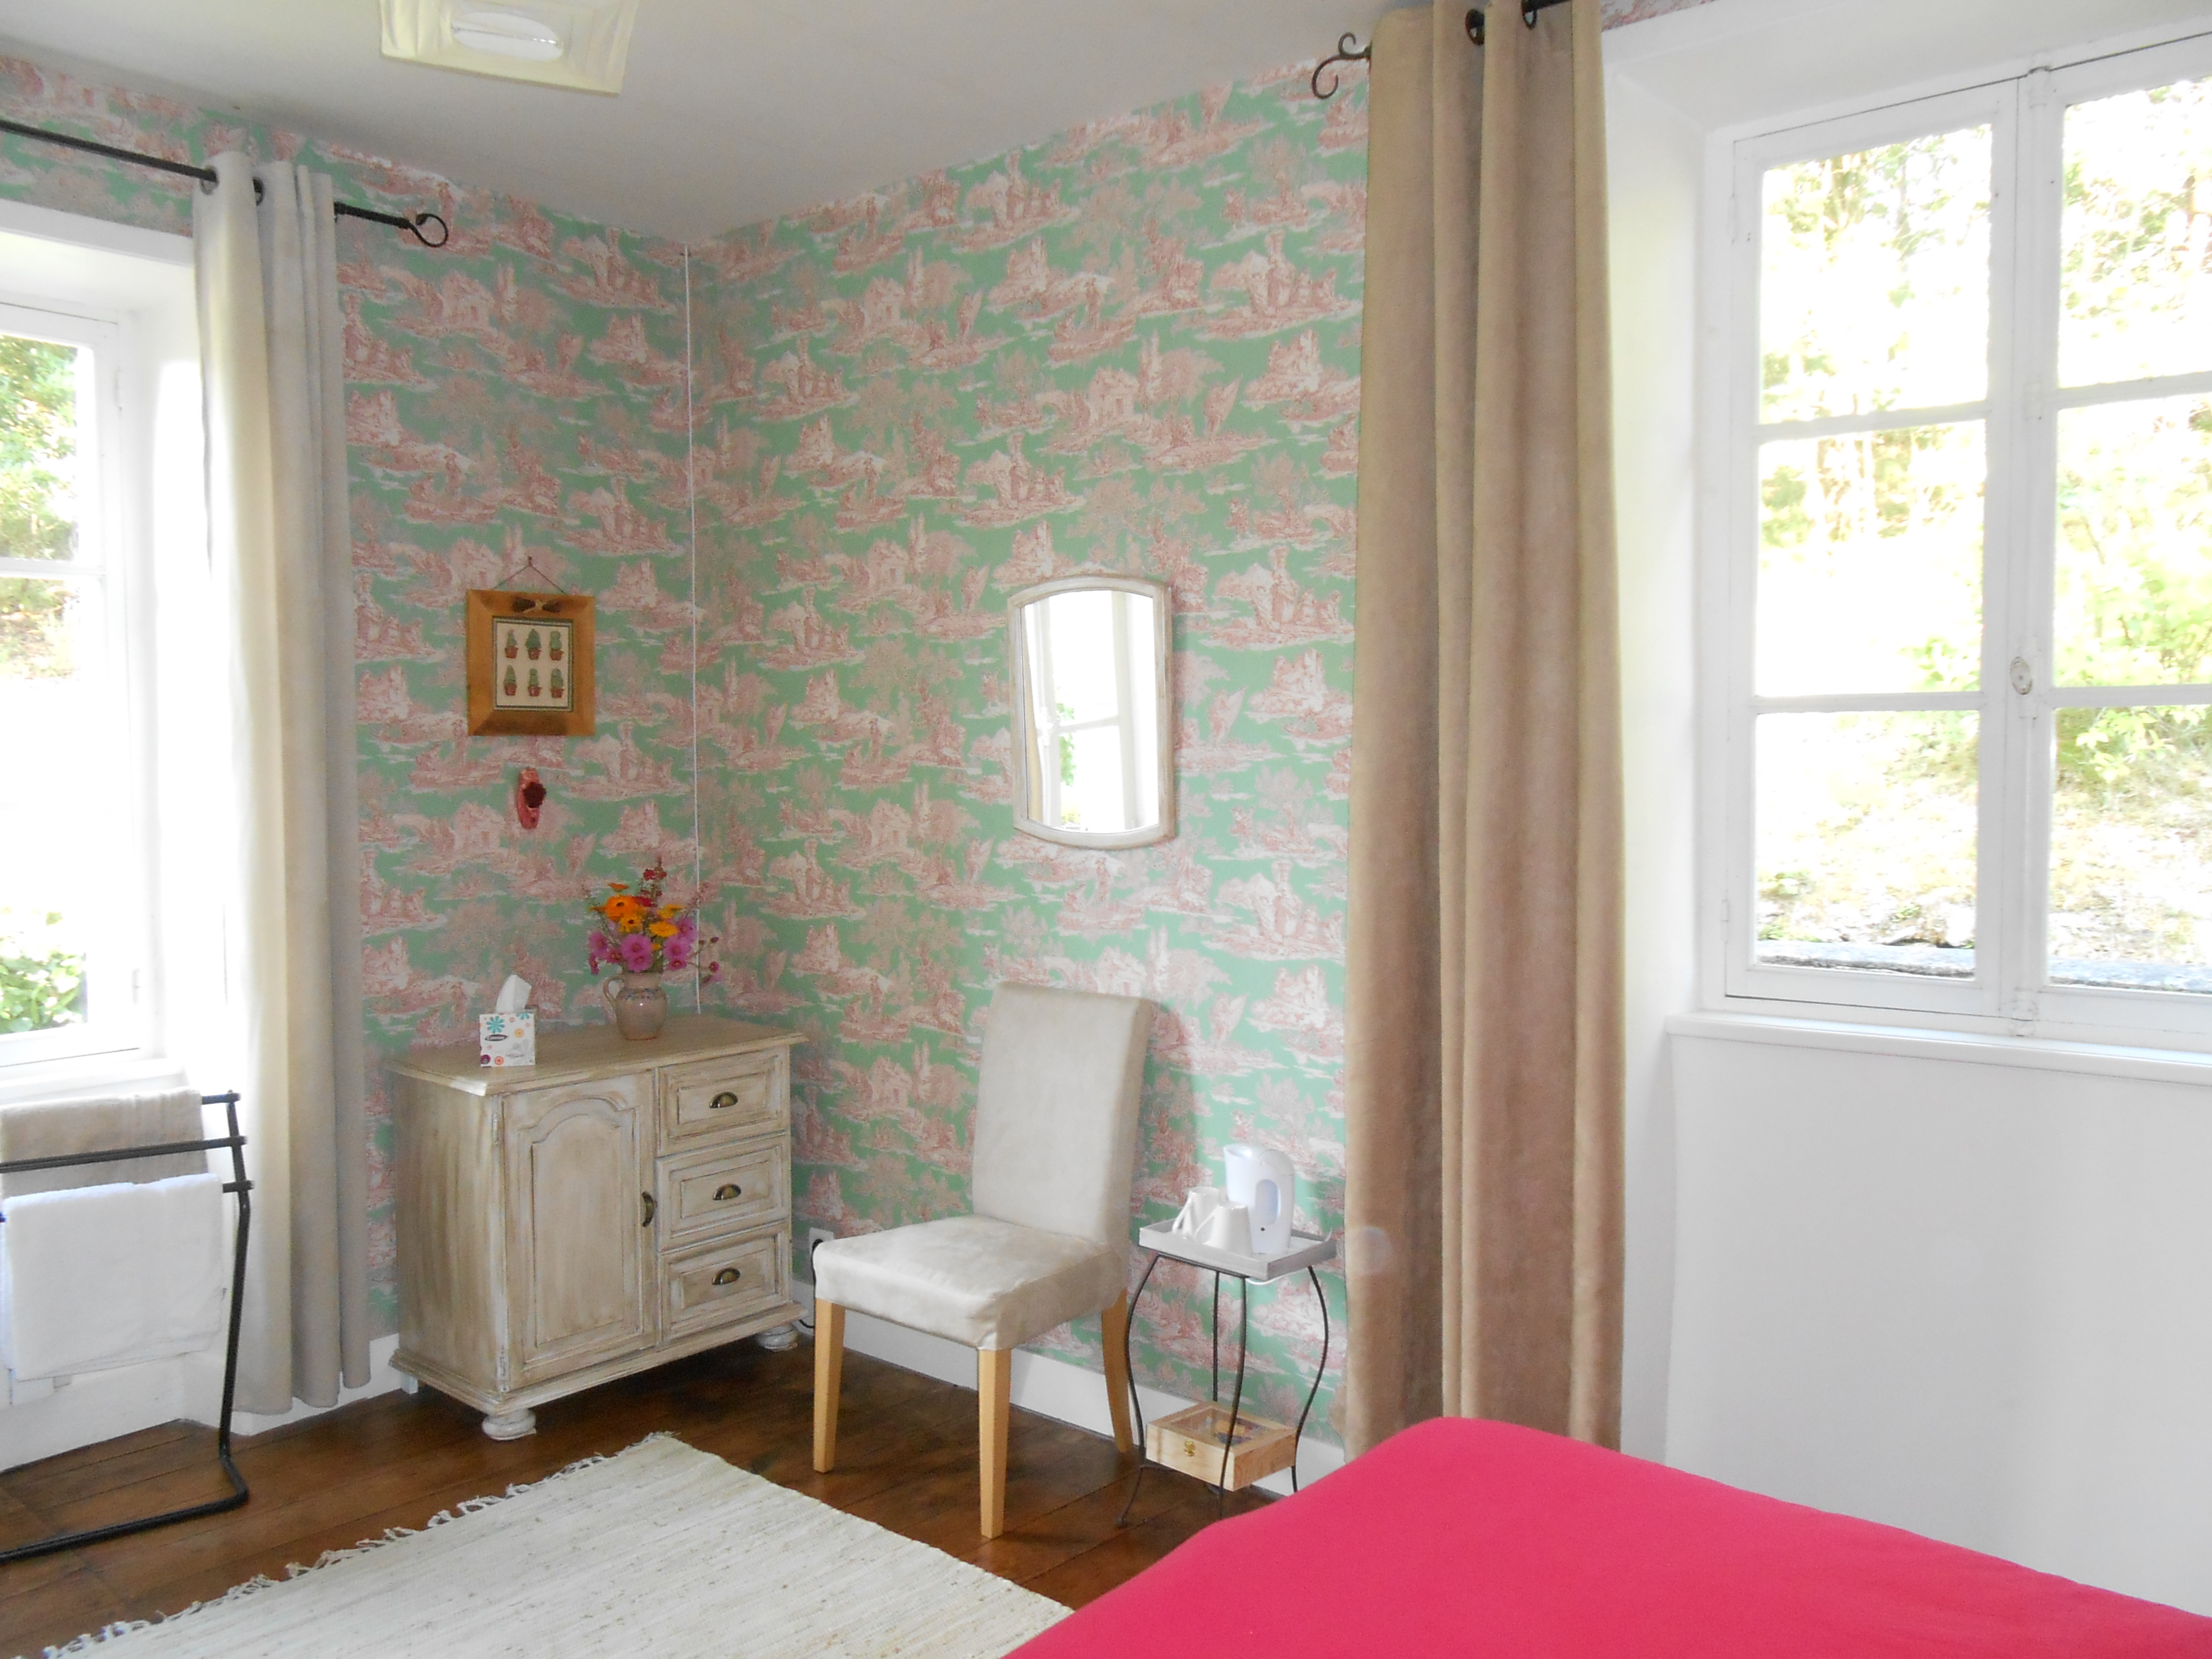 La berc ly chambres d 39 h tes chambres d 39 h tes tudeils for Chambre d hote org